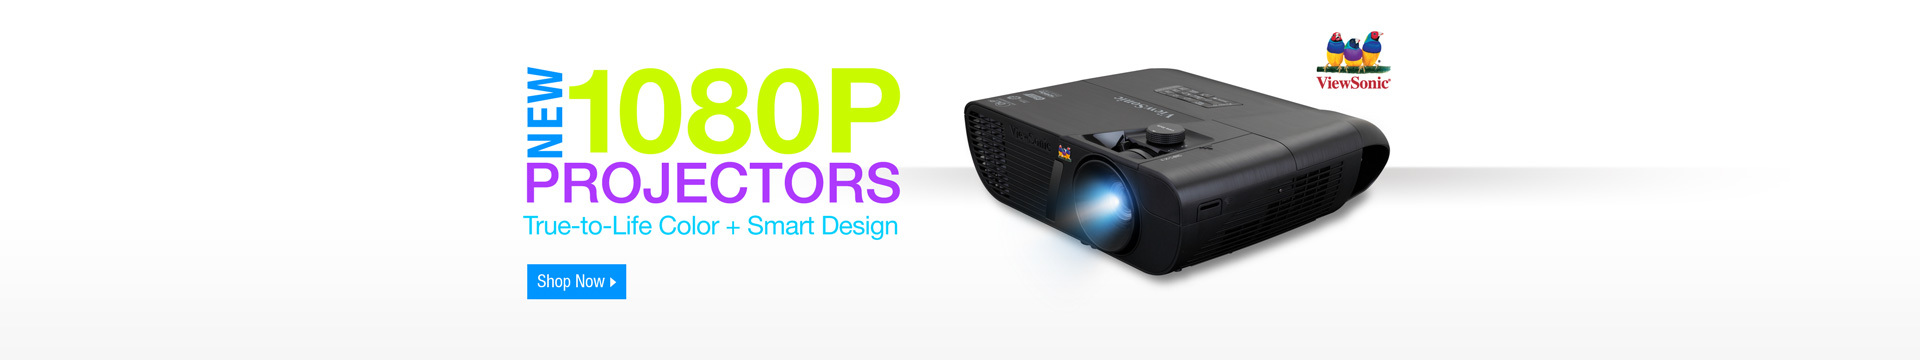 xbox one news 1080p projector